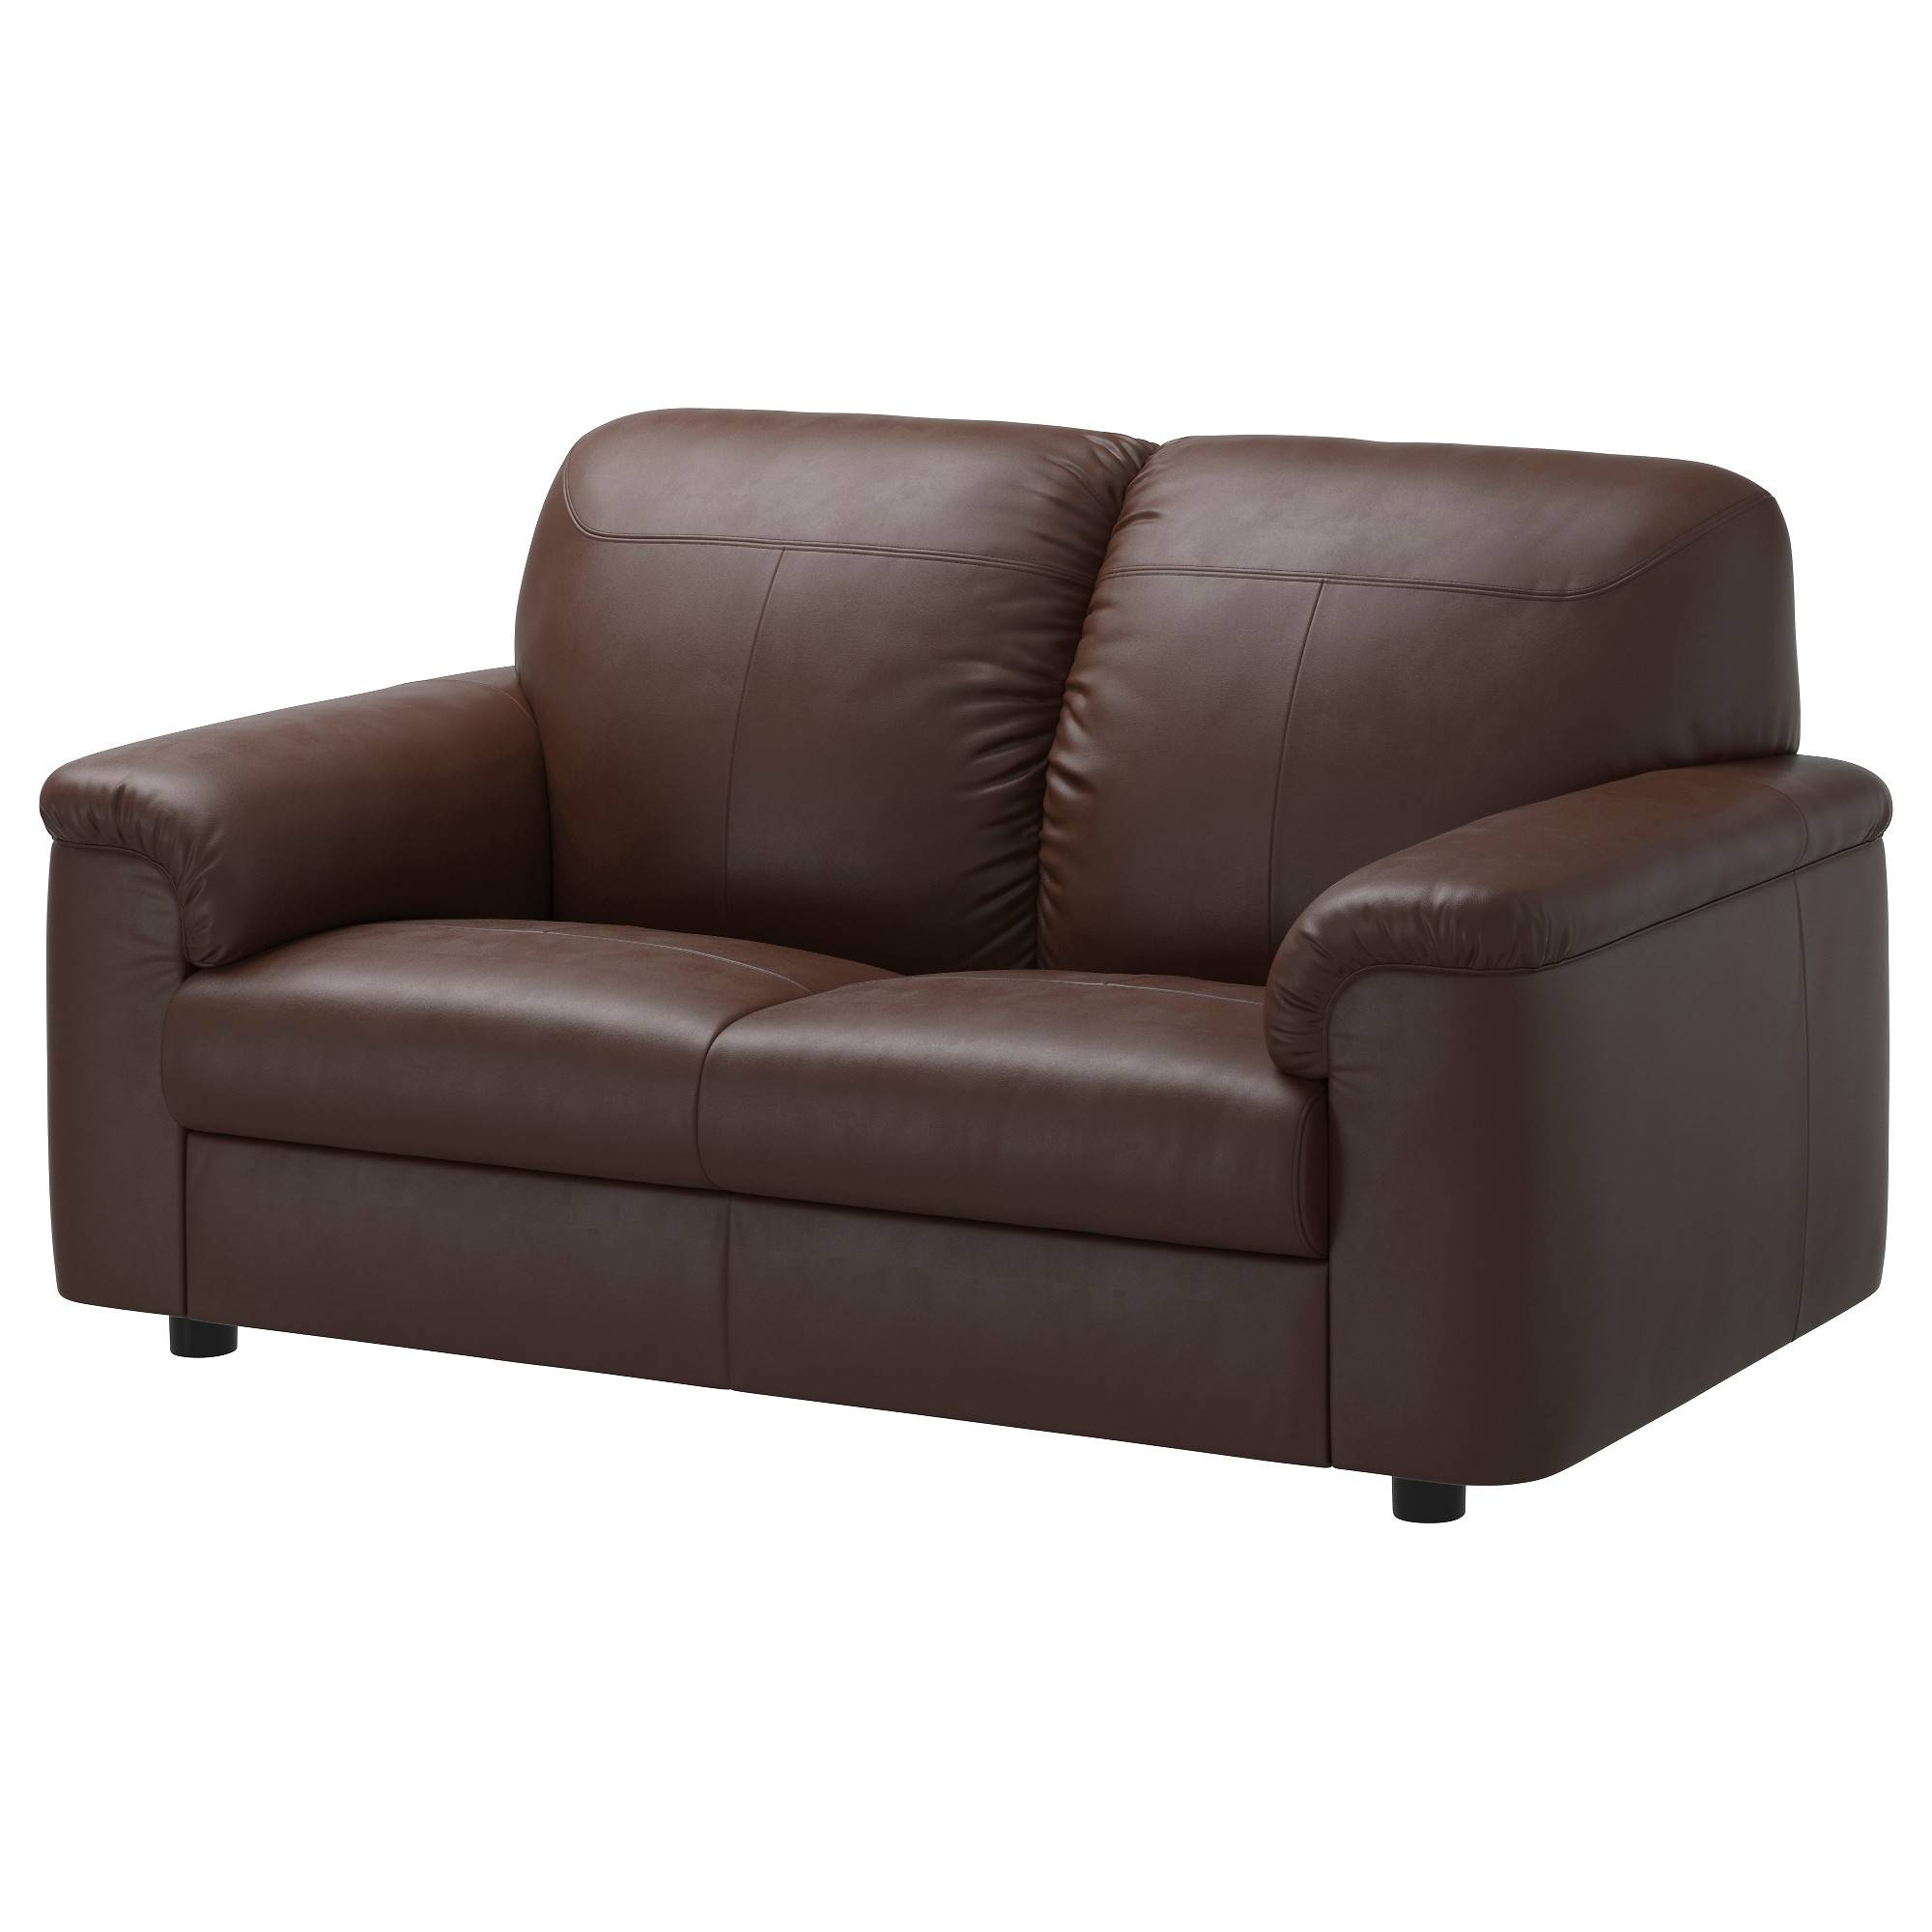 Leather & Faux Leather Couches, Chairs & Ottomans - Ikea in 68 Inch Sofas (Image 10 of 30)